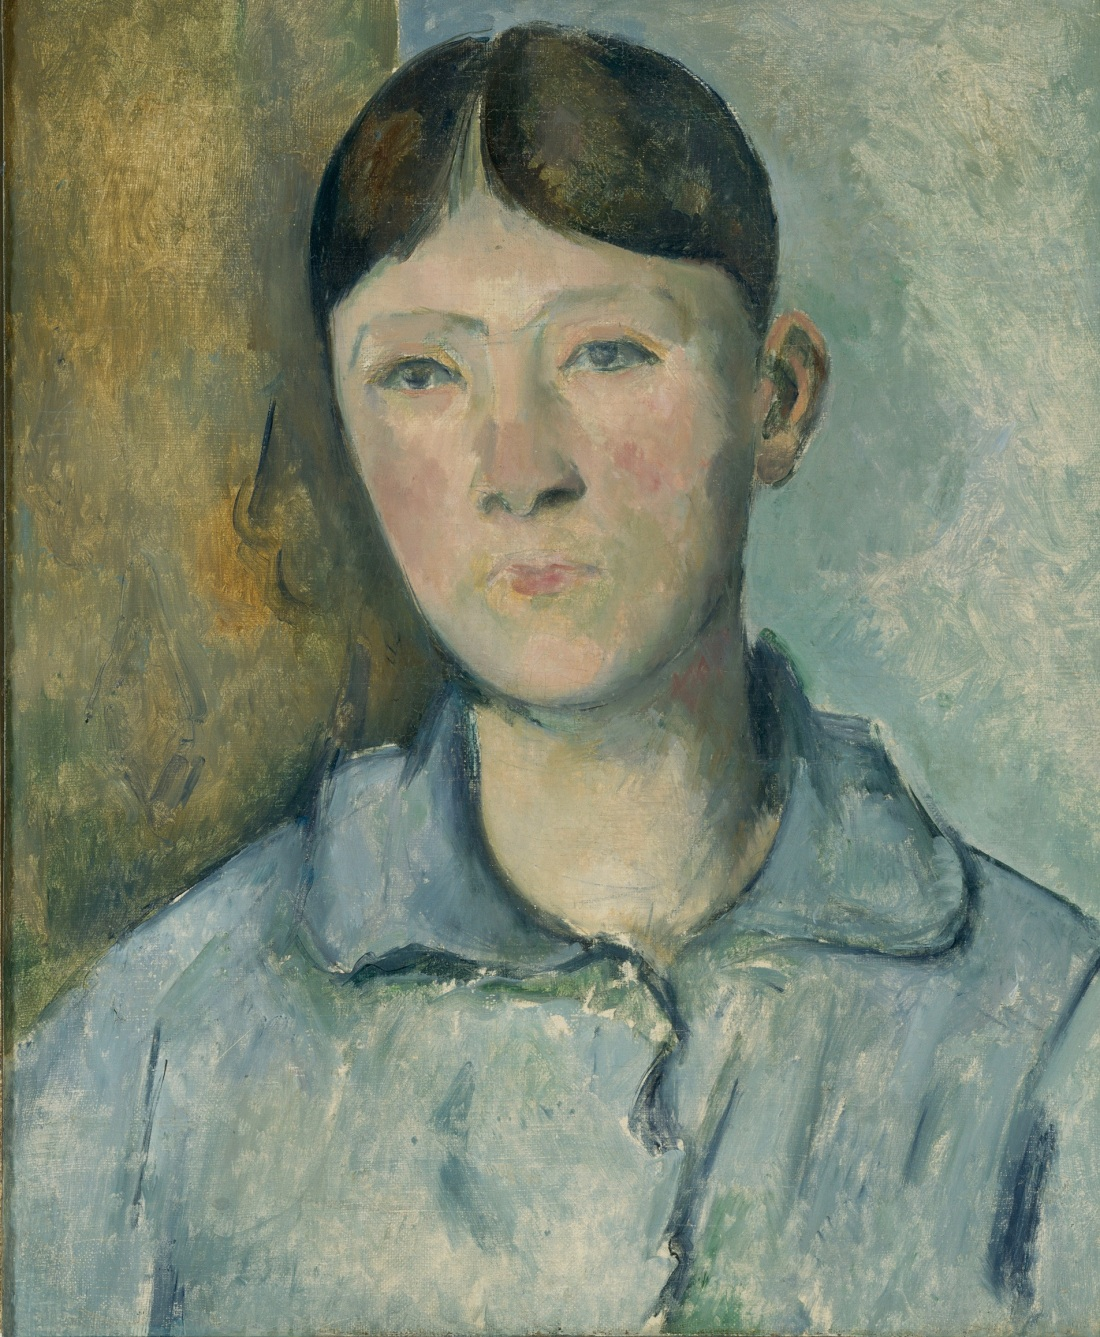 Paul Cezanne, Portrait of Madame Cezanne, Ca. 1885-88. Musée d'Orsay, Paris.